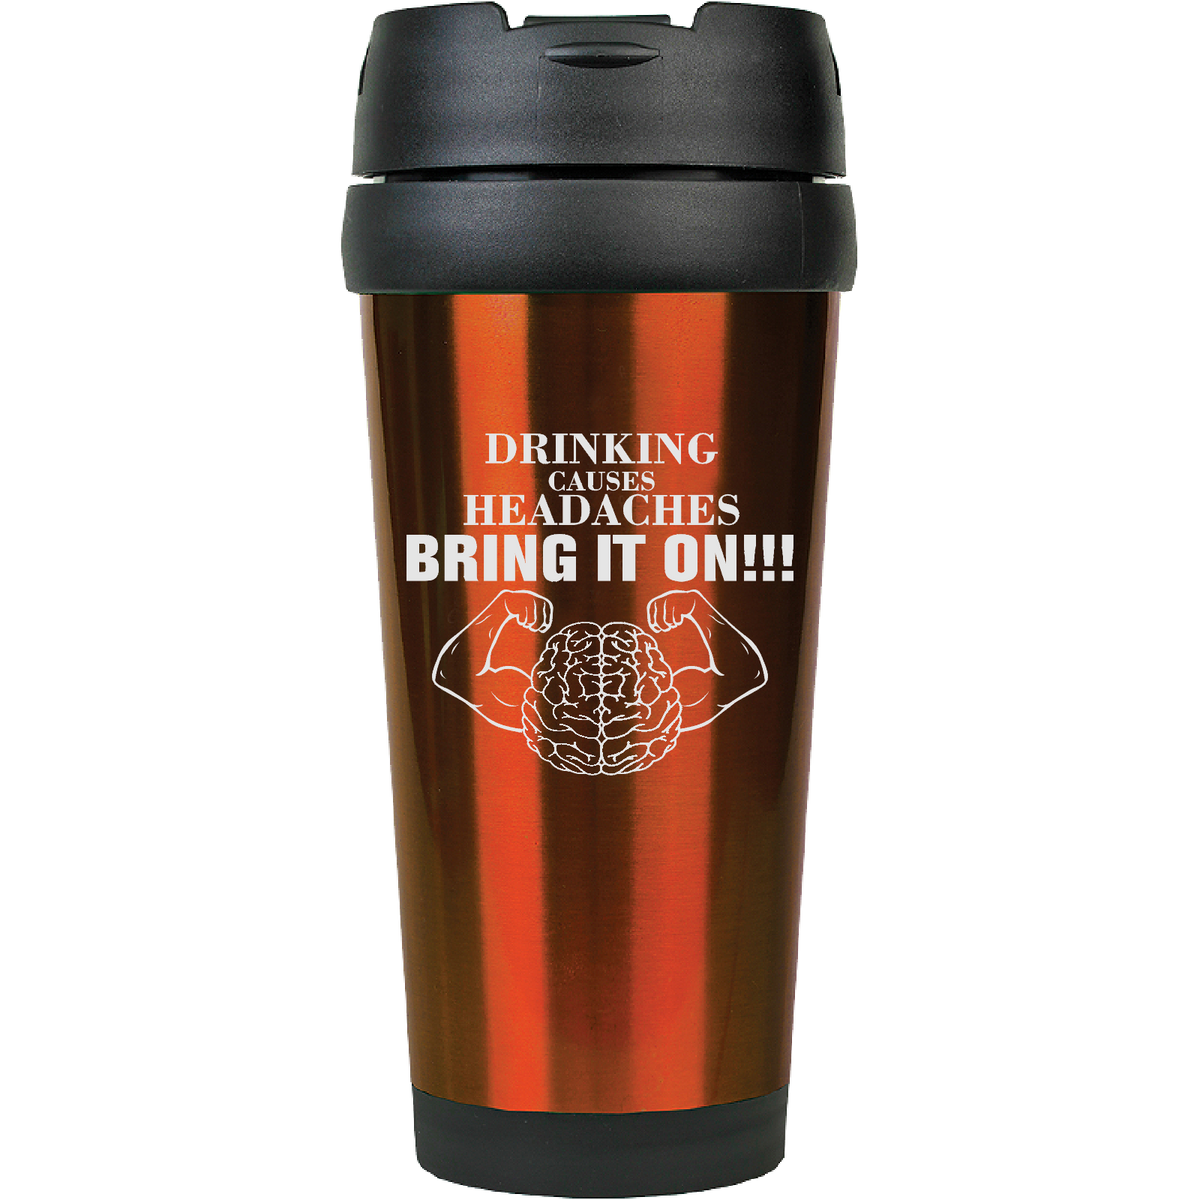 Drinking causes headaches, bring it on!!! - 16oz. Engraved Travel Mug with Flip Lid